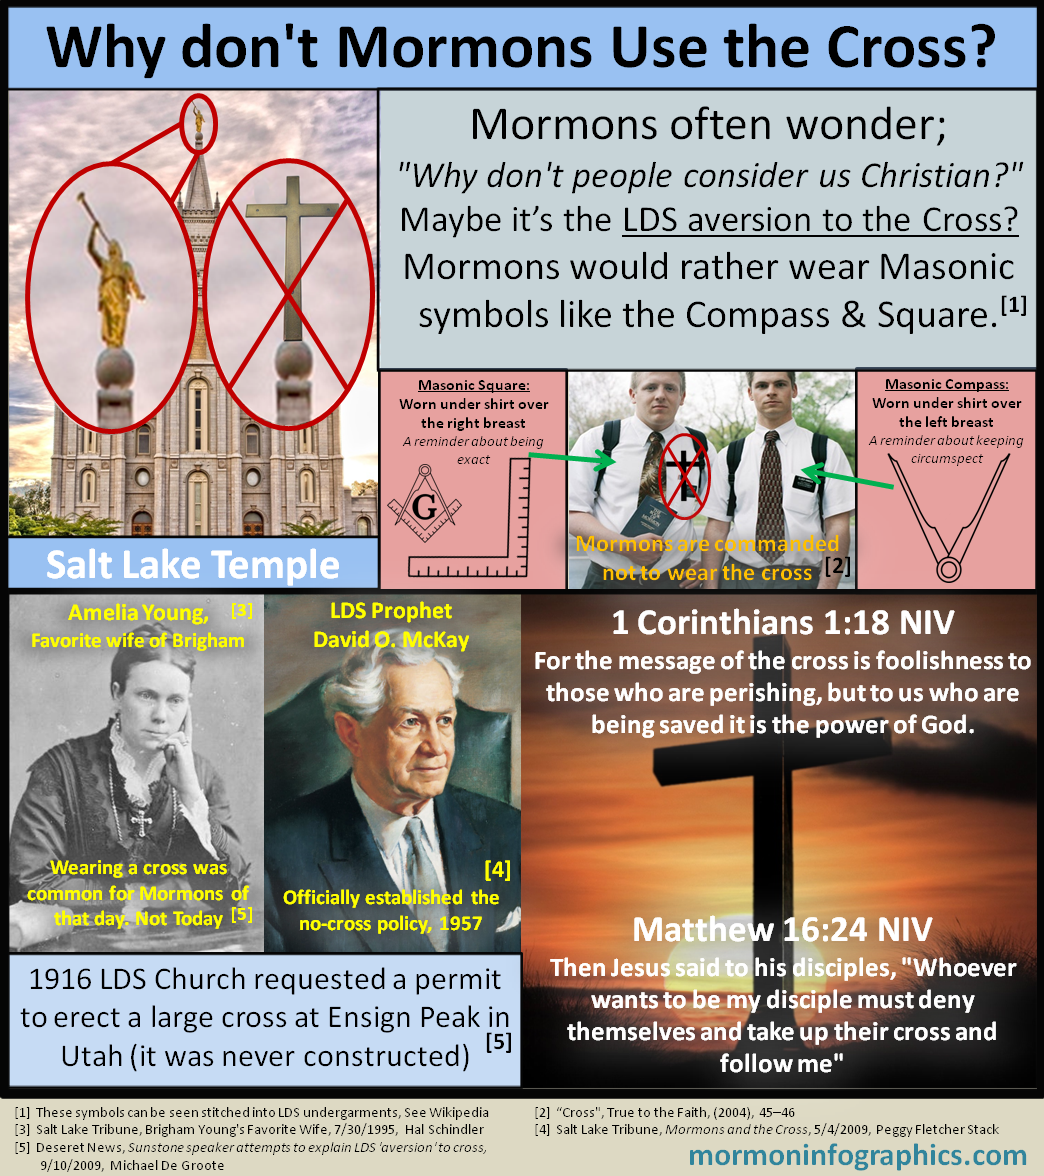 Why Don't Mormons Use the Cross?